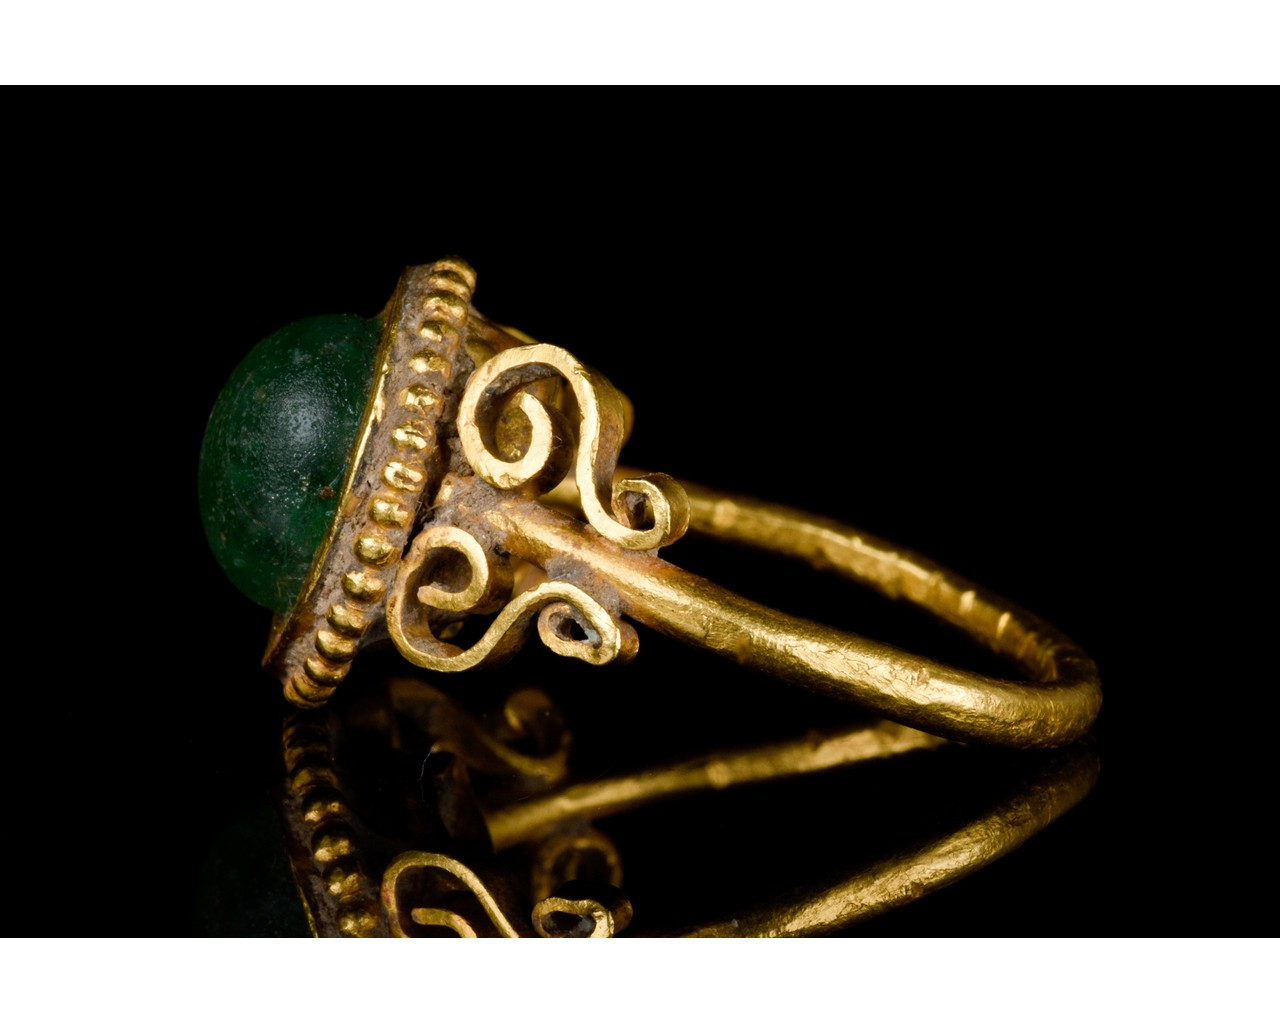 LATE ROMAN GOLD AND GLASS RING - EX CHRISTIE'S - FULL ANALYSIS - Image 3 of 8